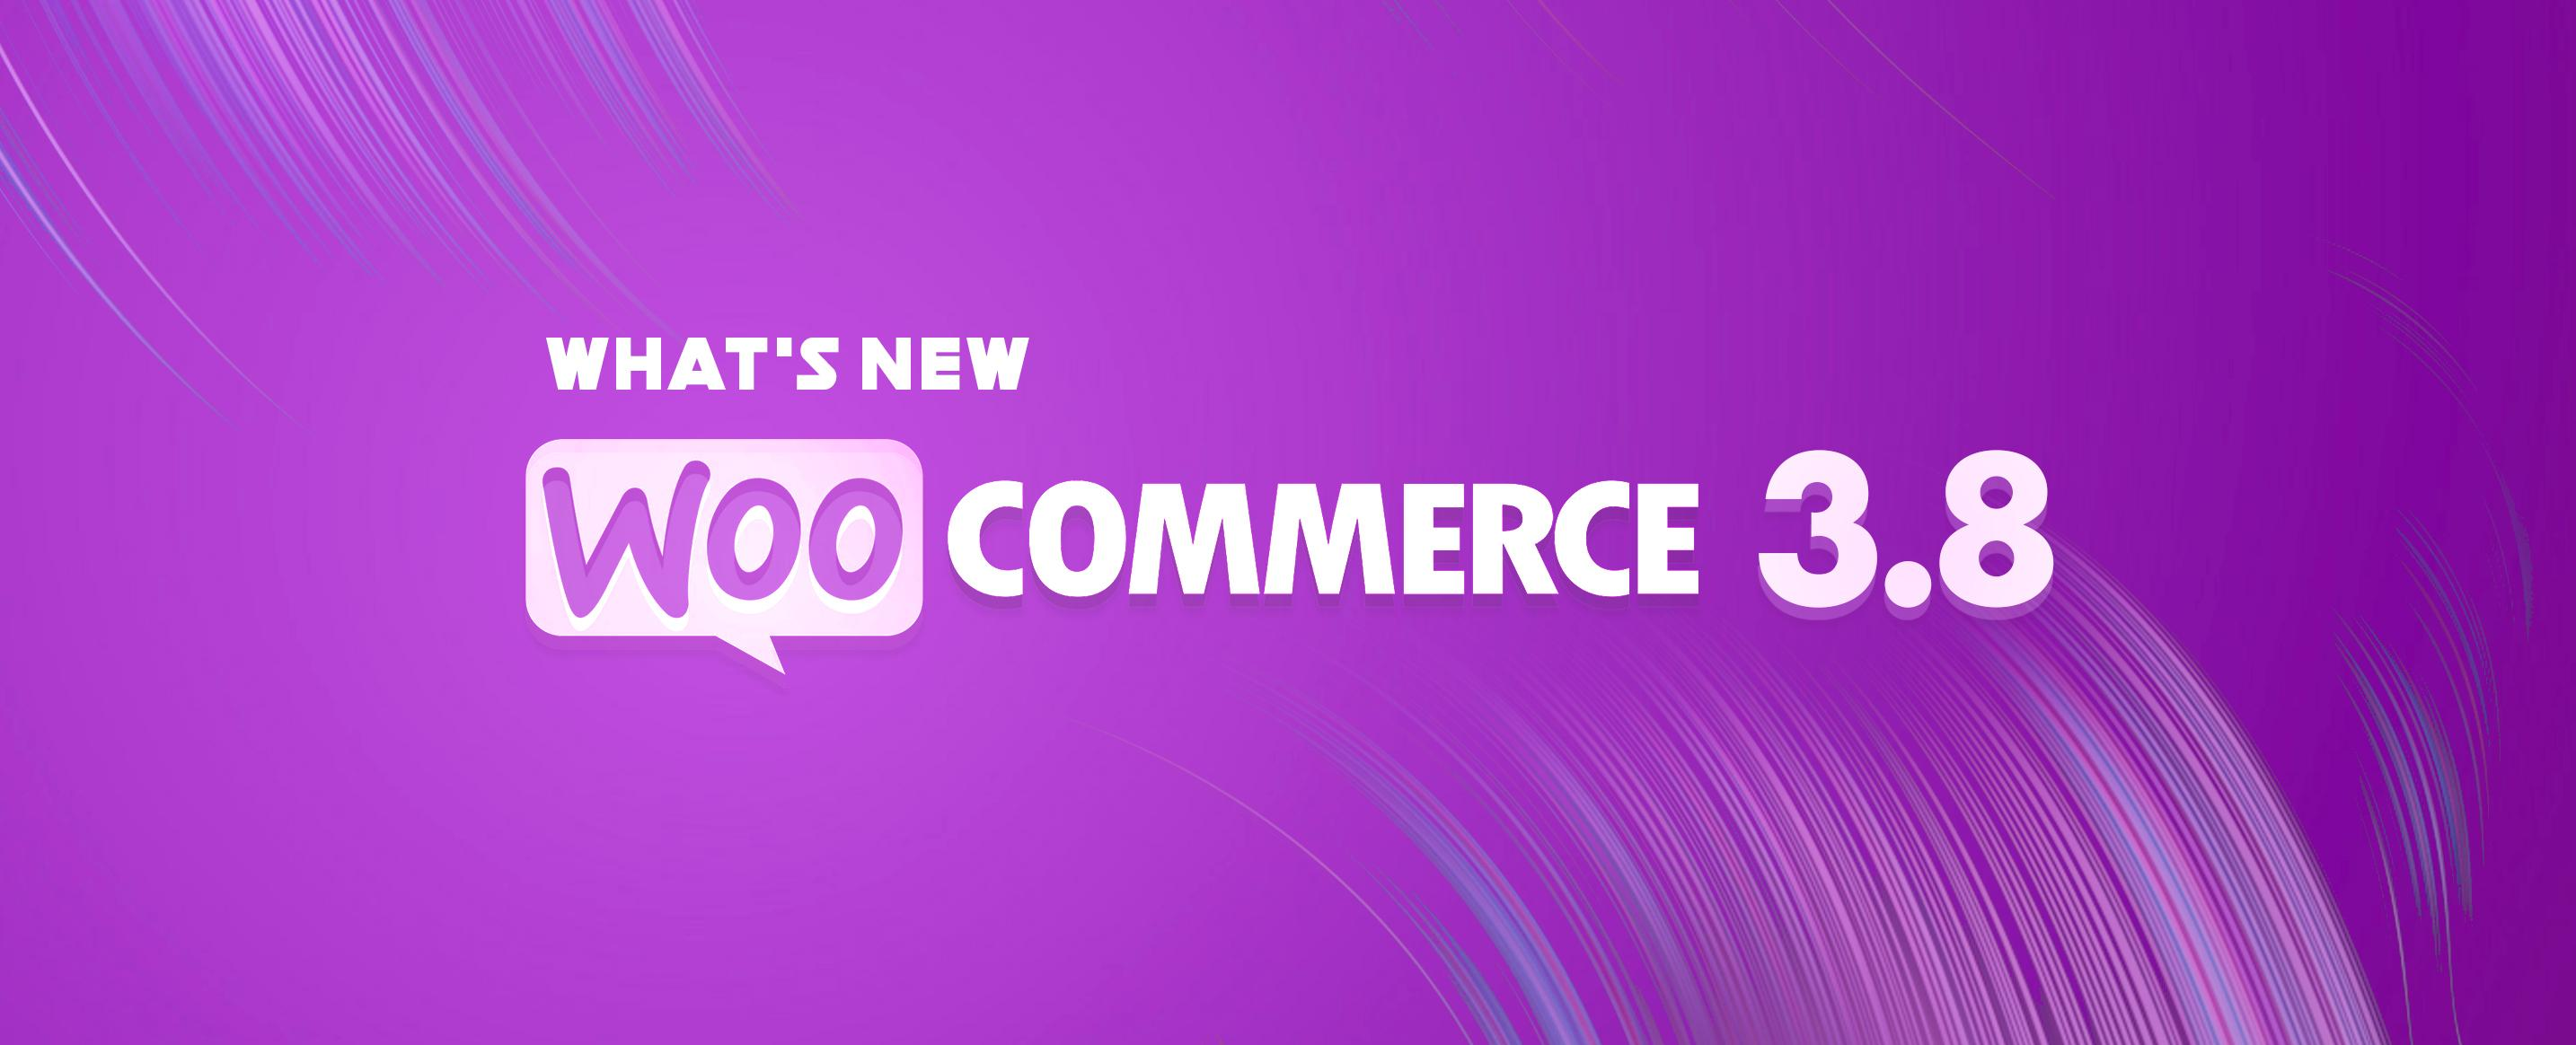 what's-new-woocommerce3.8